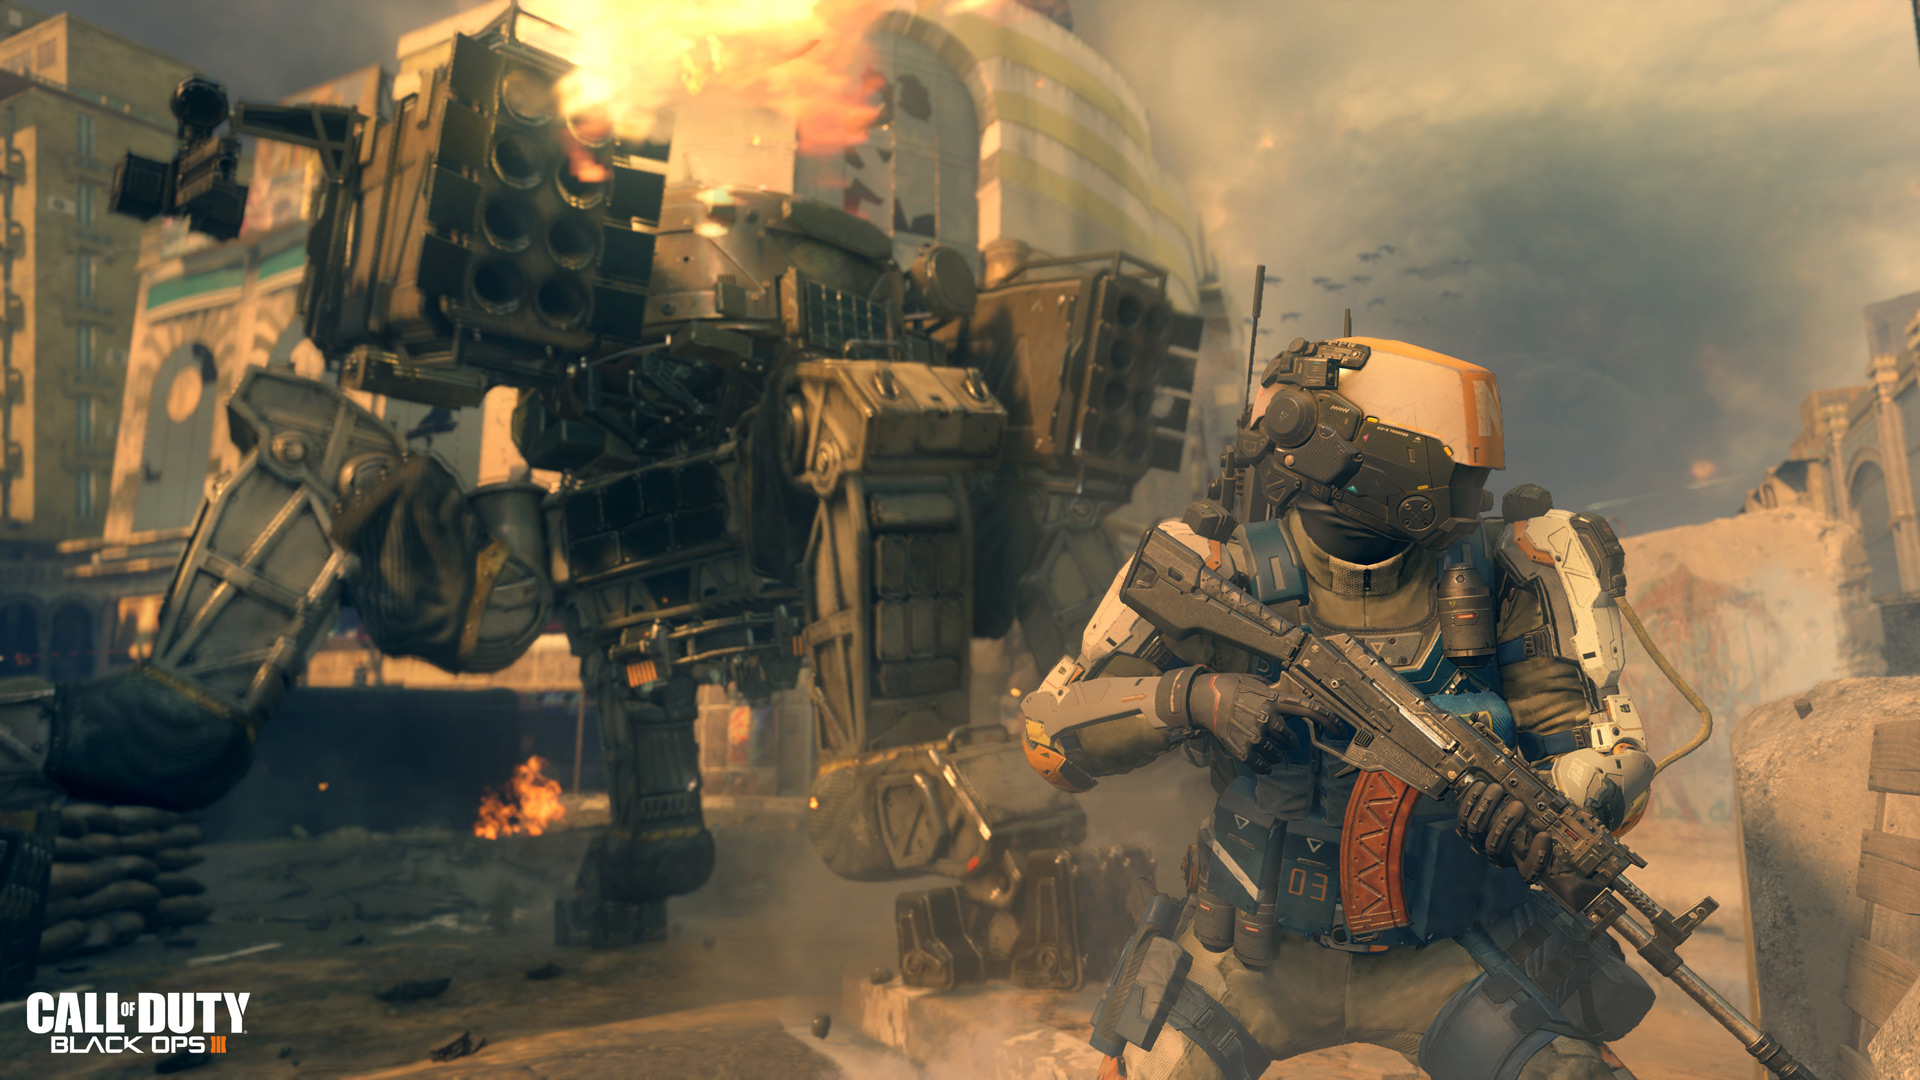 Call of Duty: Black Ops 3 beta is now available for all PS4 users